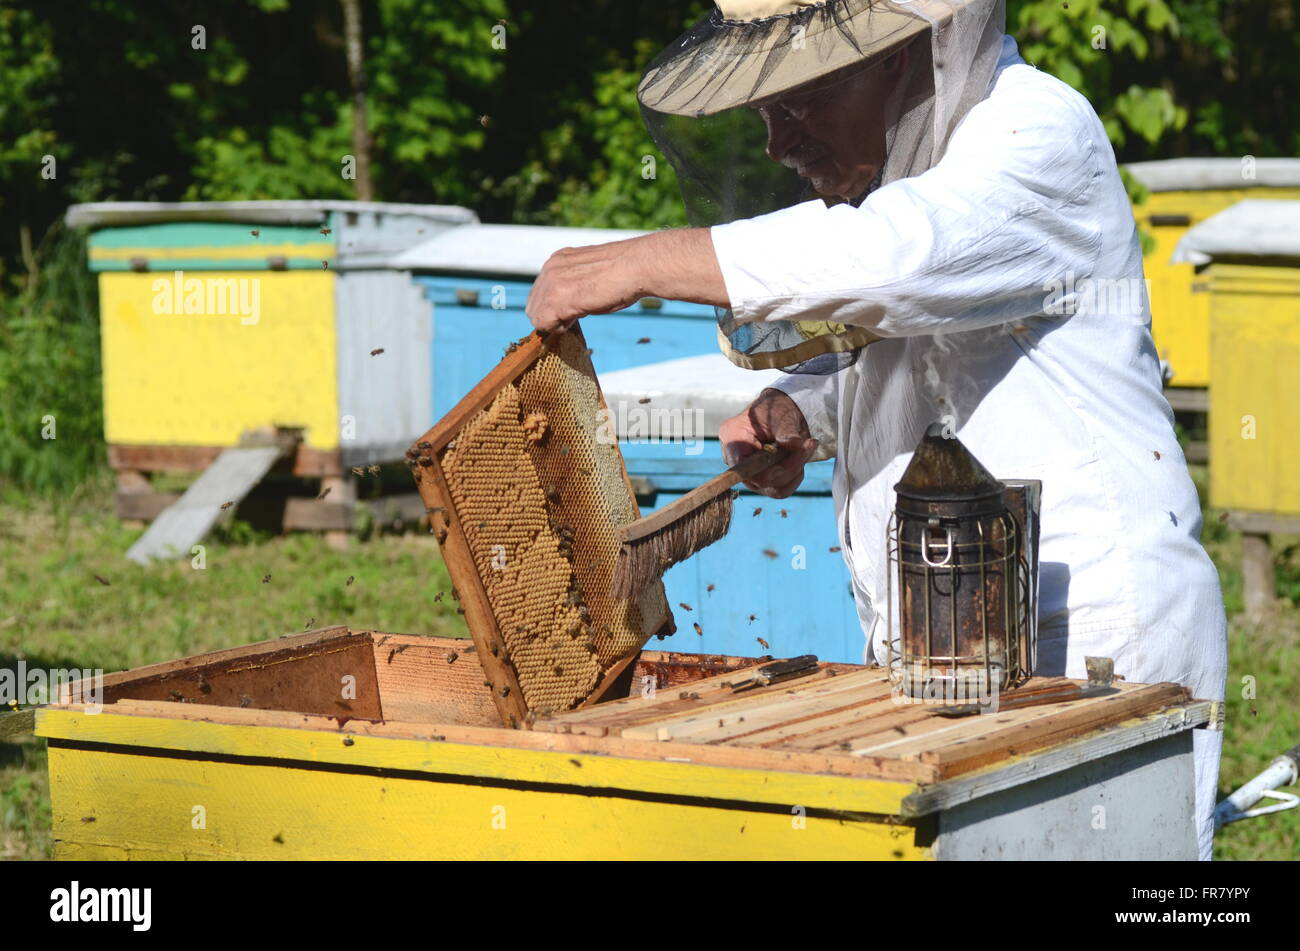 Experienced senior apiarist cutting out piece of larva honeycomb in apiary in the springtime - Stock Image